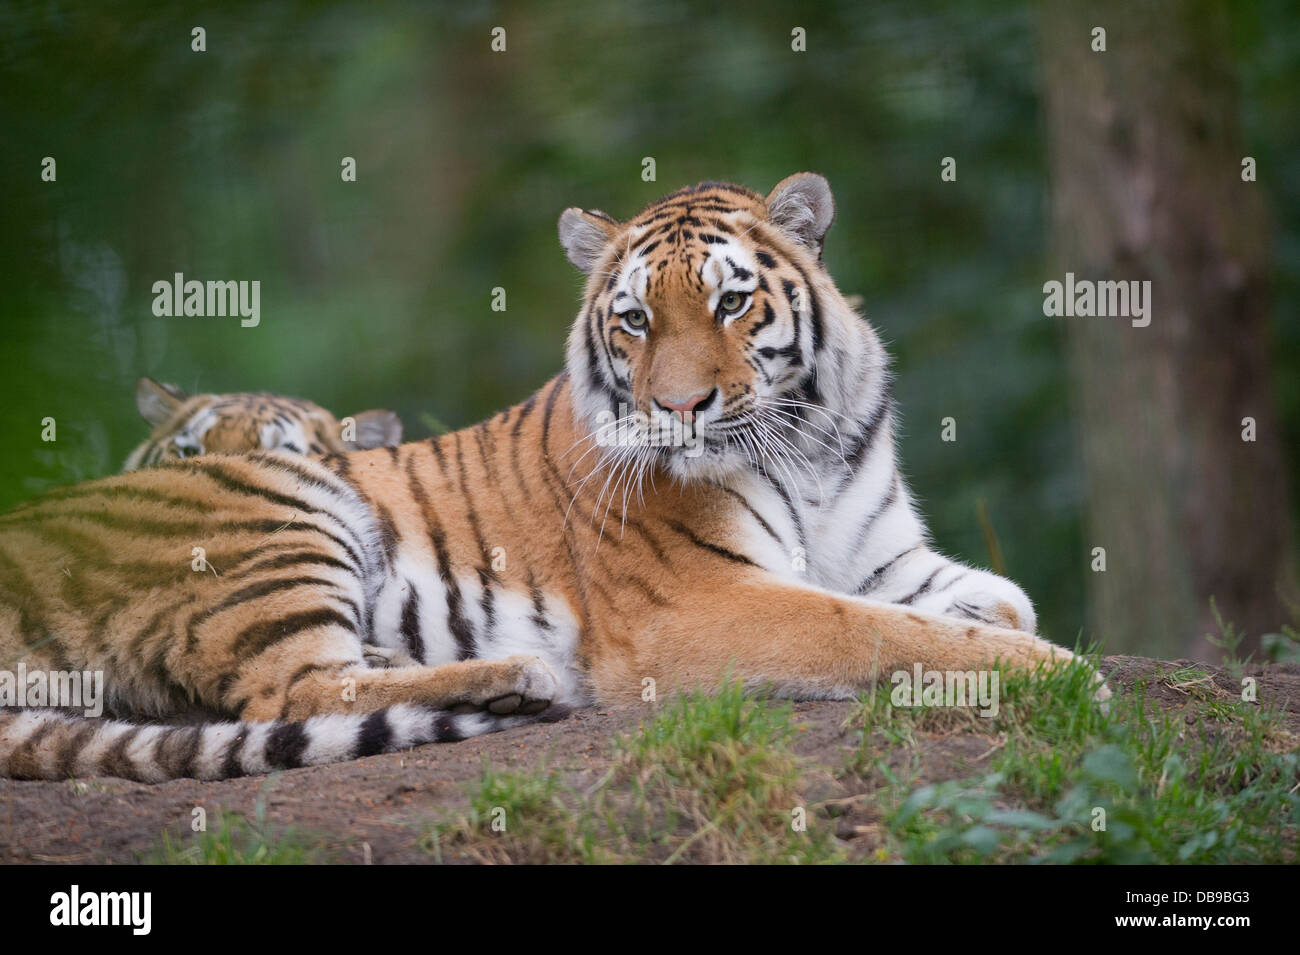 Siberian tiger (Panthera tigris altaica), also known as the Amur tiger - Stock Image